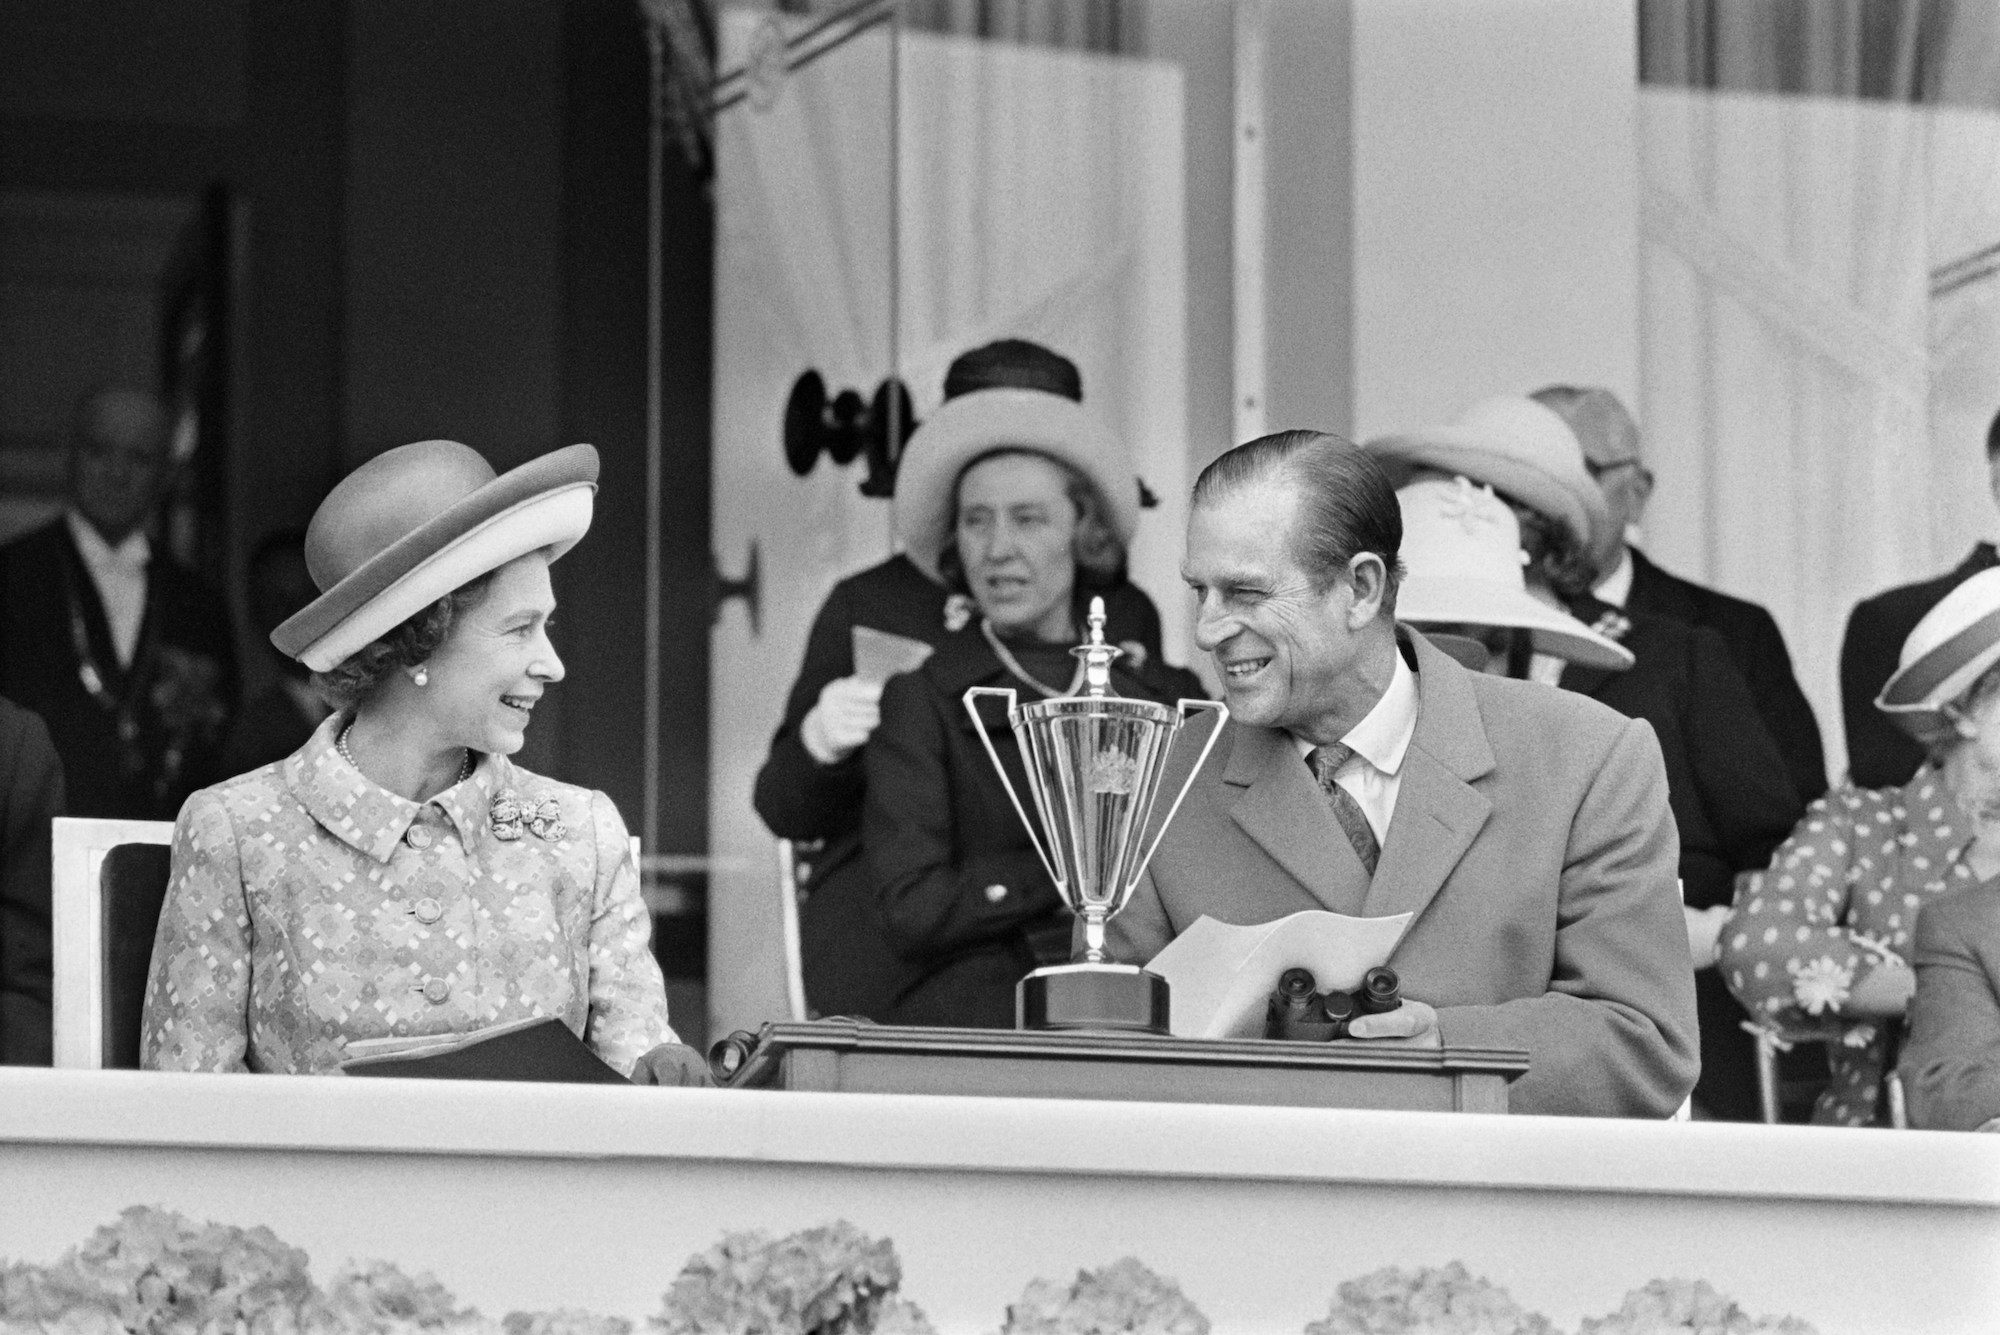 Queen Elizabeth II and Prince Philip attend a horse race at Longchamp racecourse